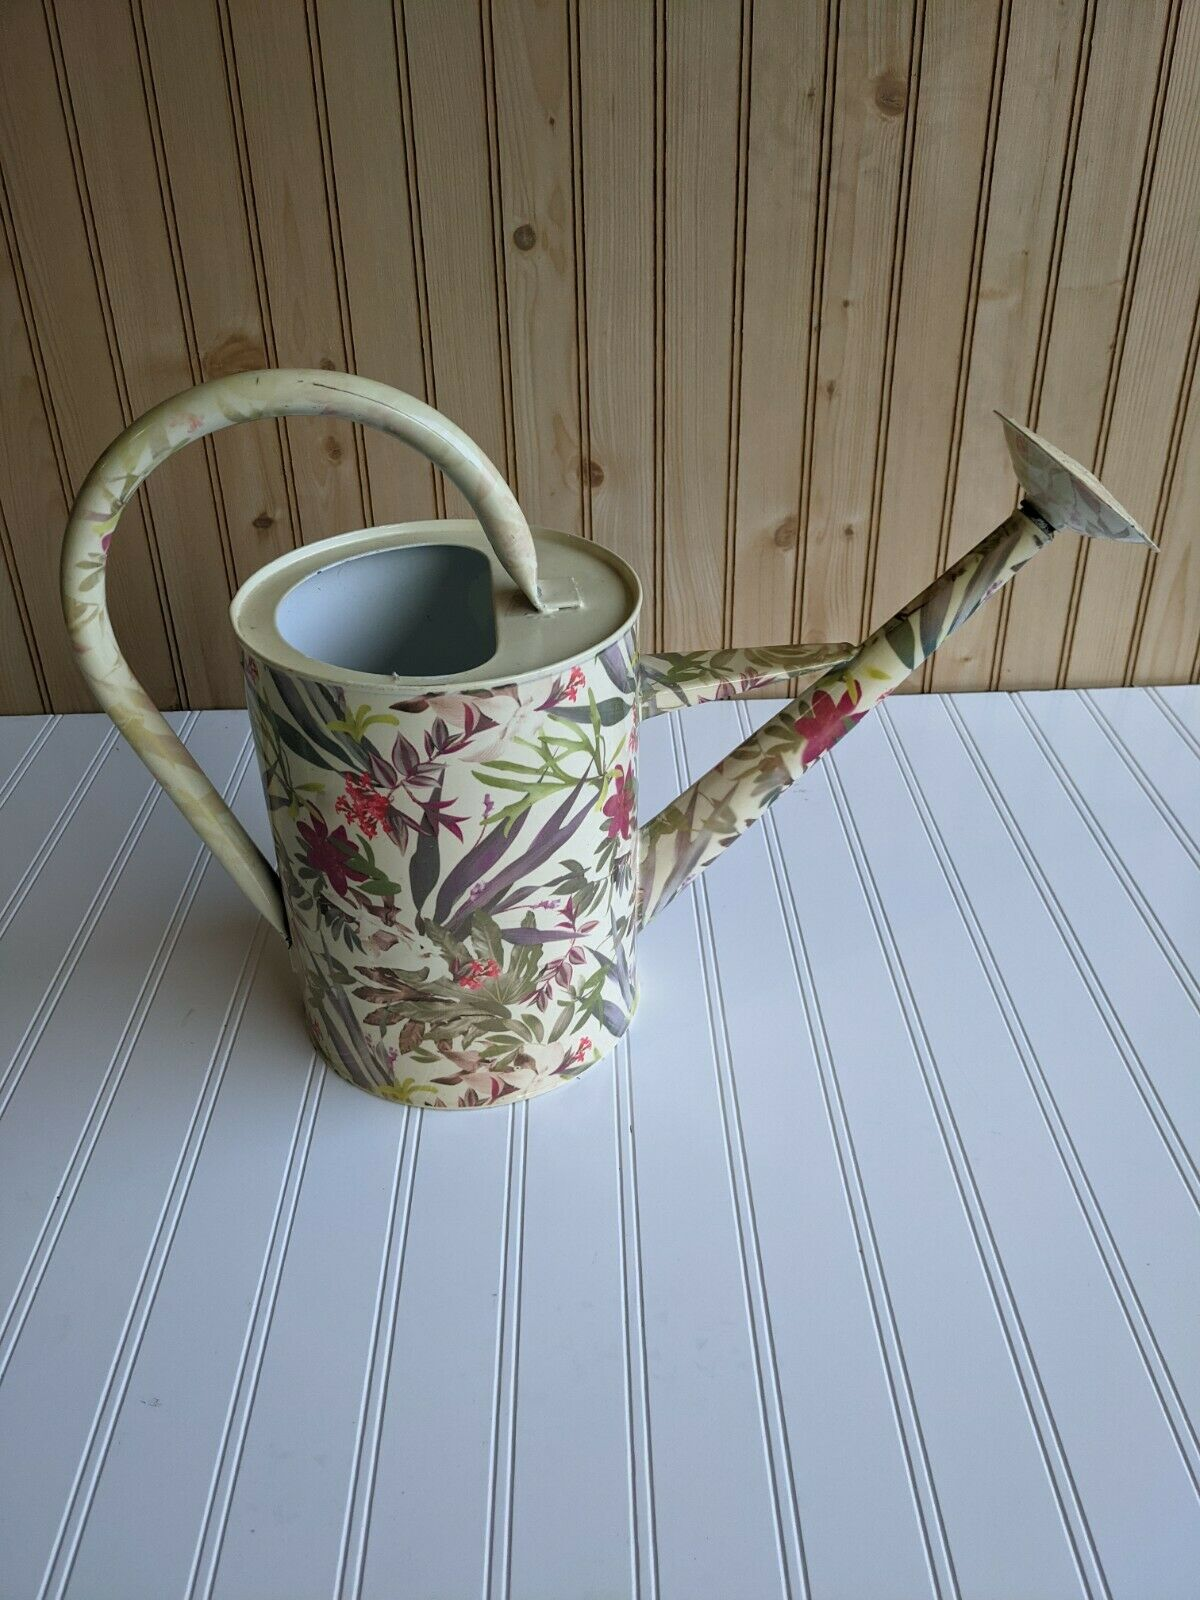 Stainless Steel Floral Watering Can